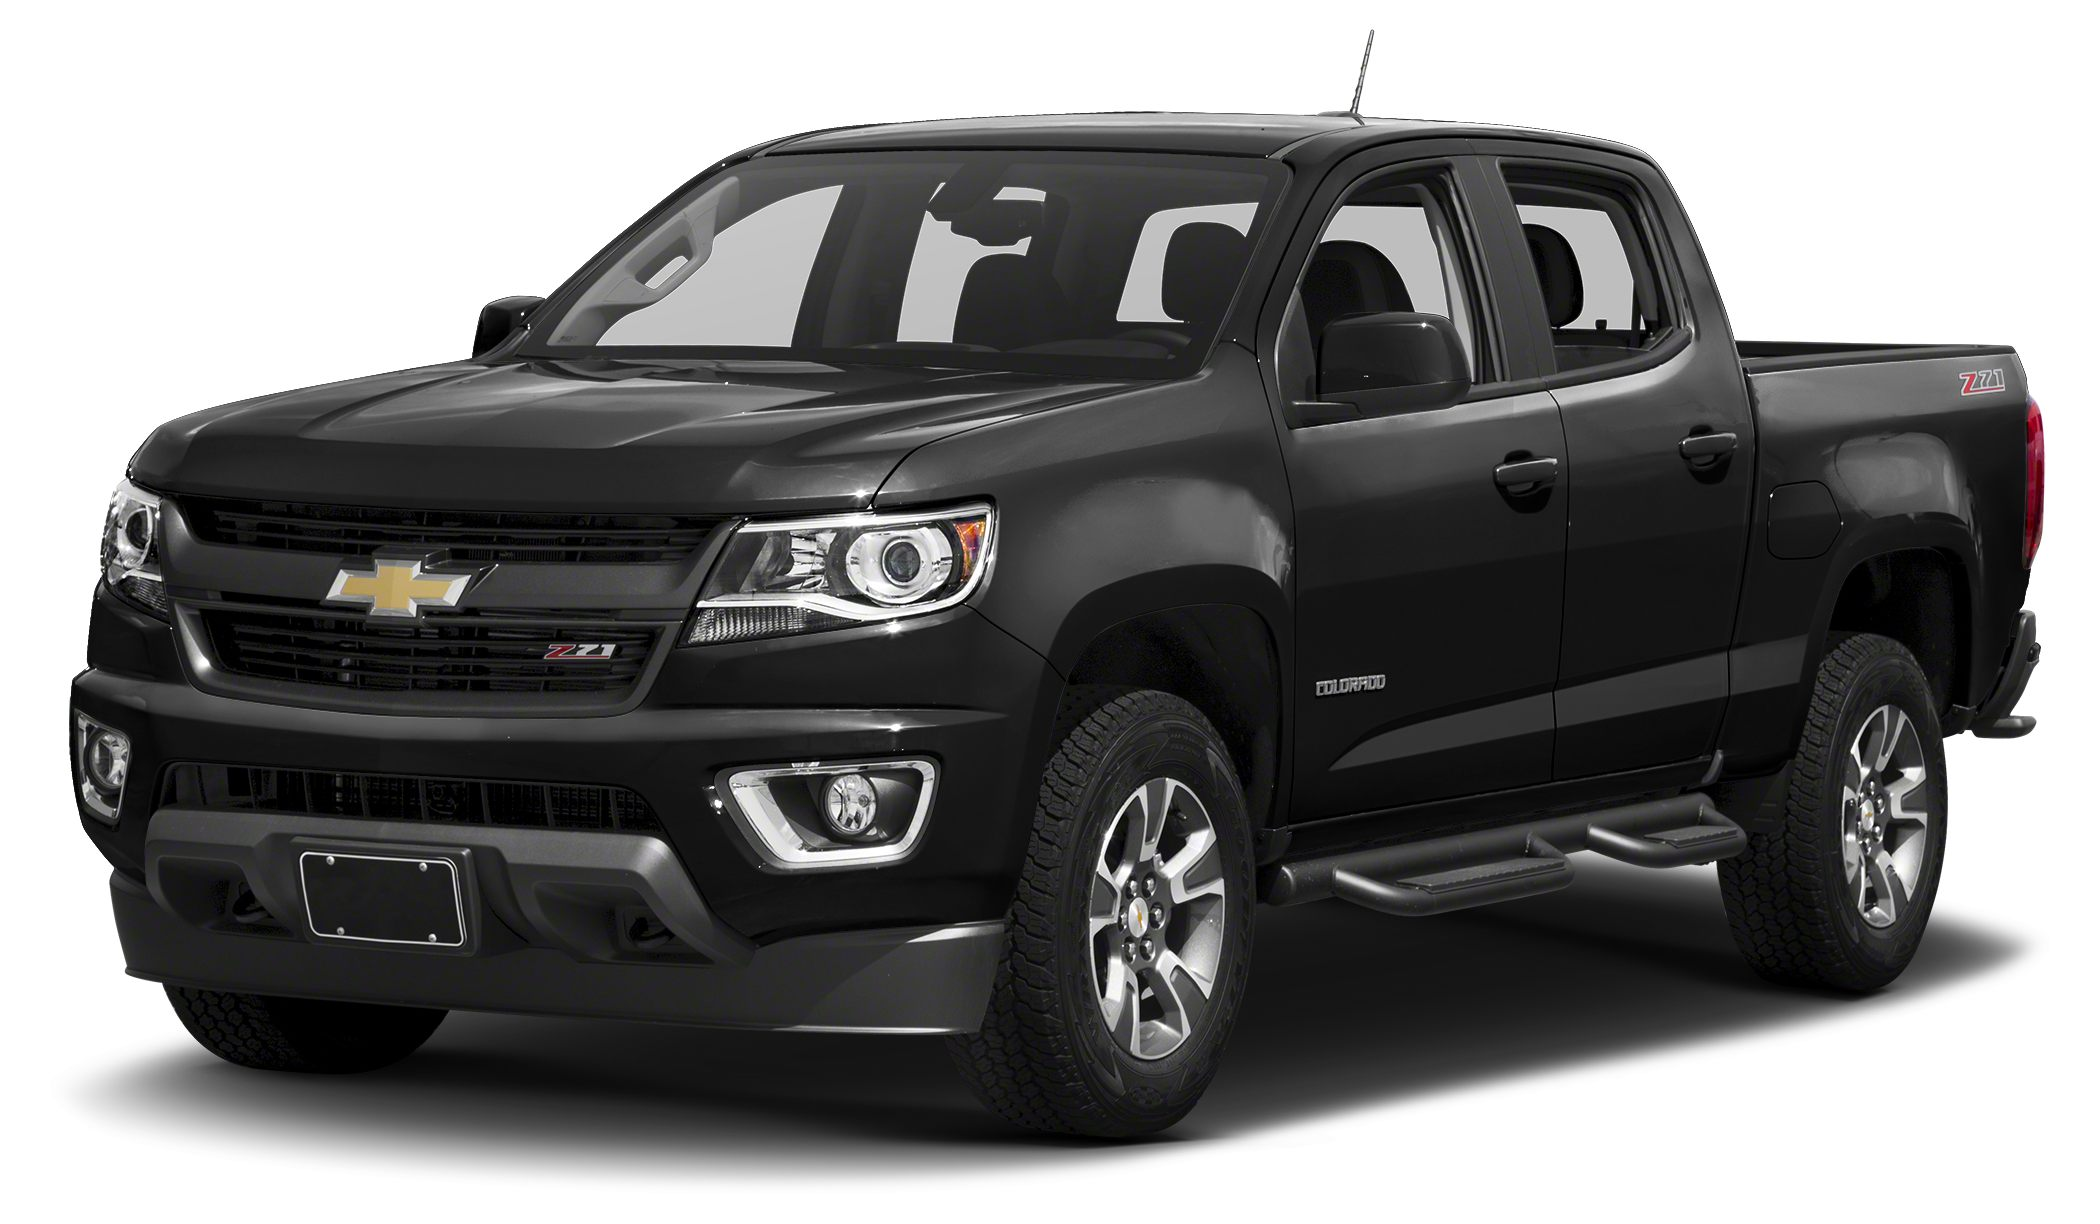 2016 Chevrolet Colorado Z71 With advanced technology to keep you connected great fuel efficiency